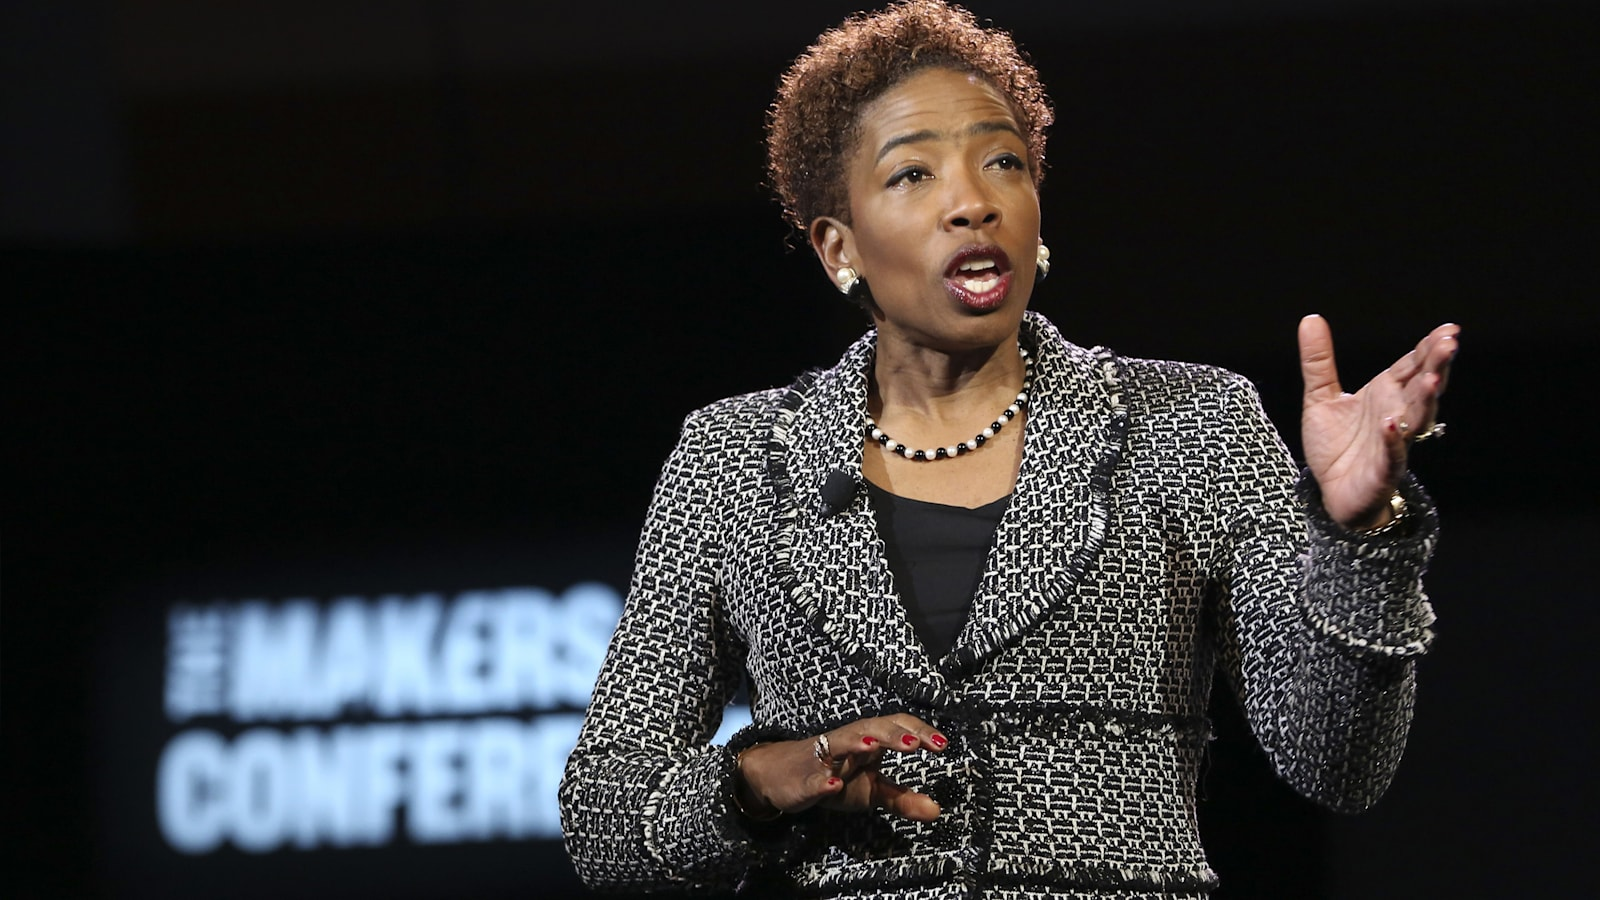 Wall Street Boss Carla Harris Reveals the One Person Who Can Make Your Career